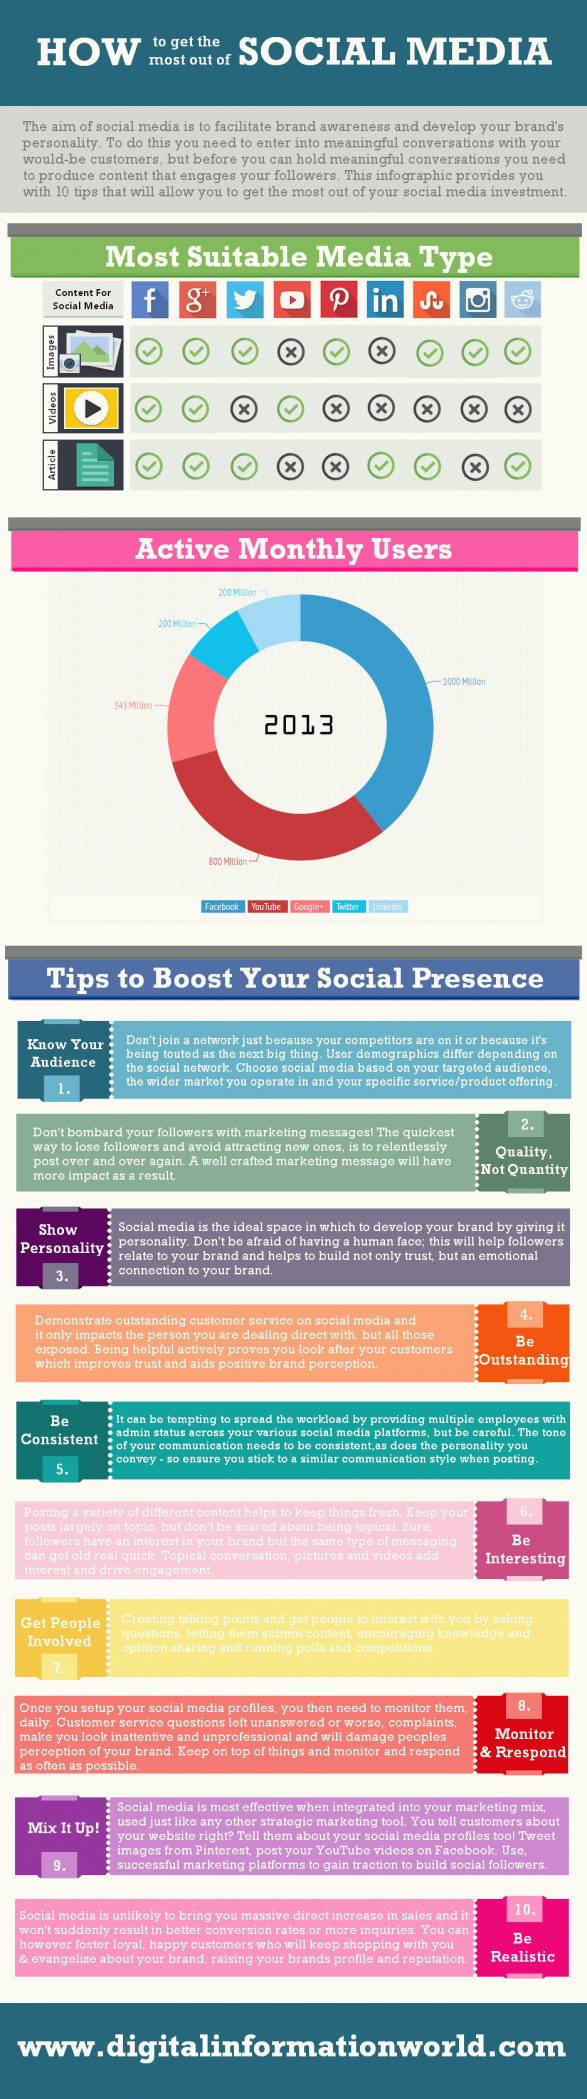 Get The Most Out Of Your Social Media